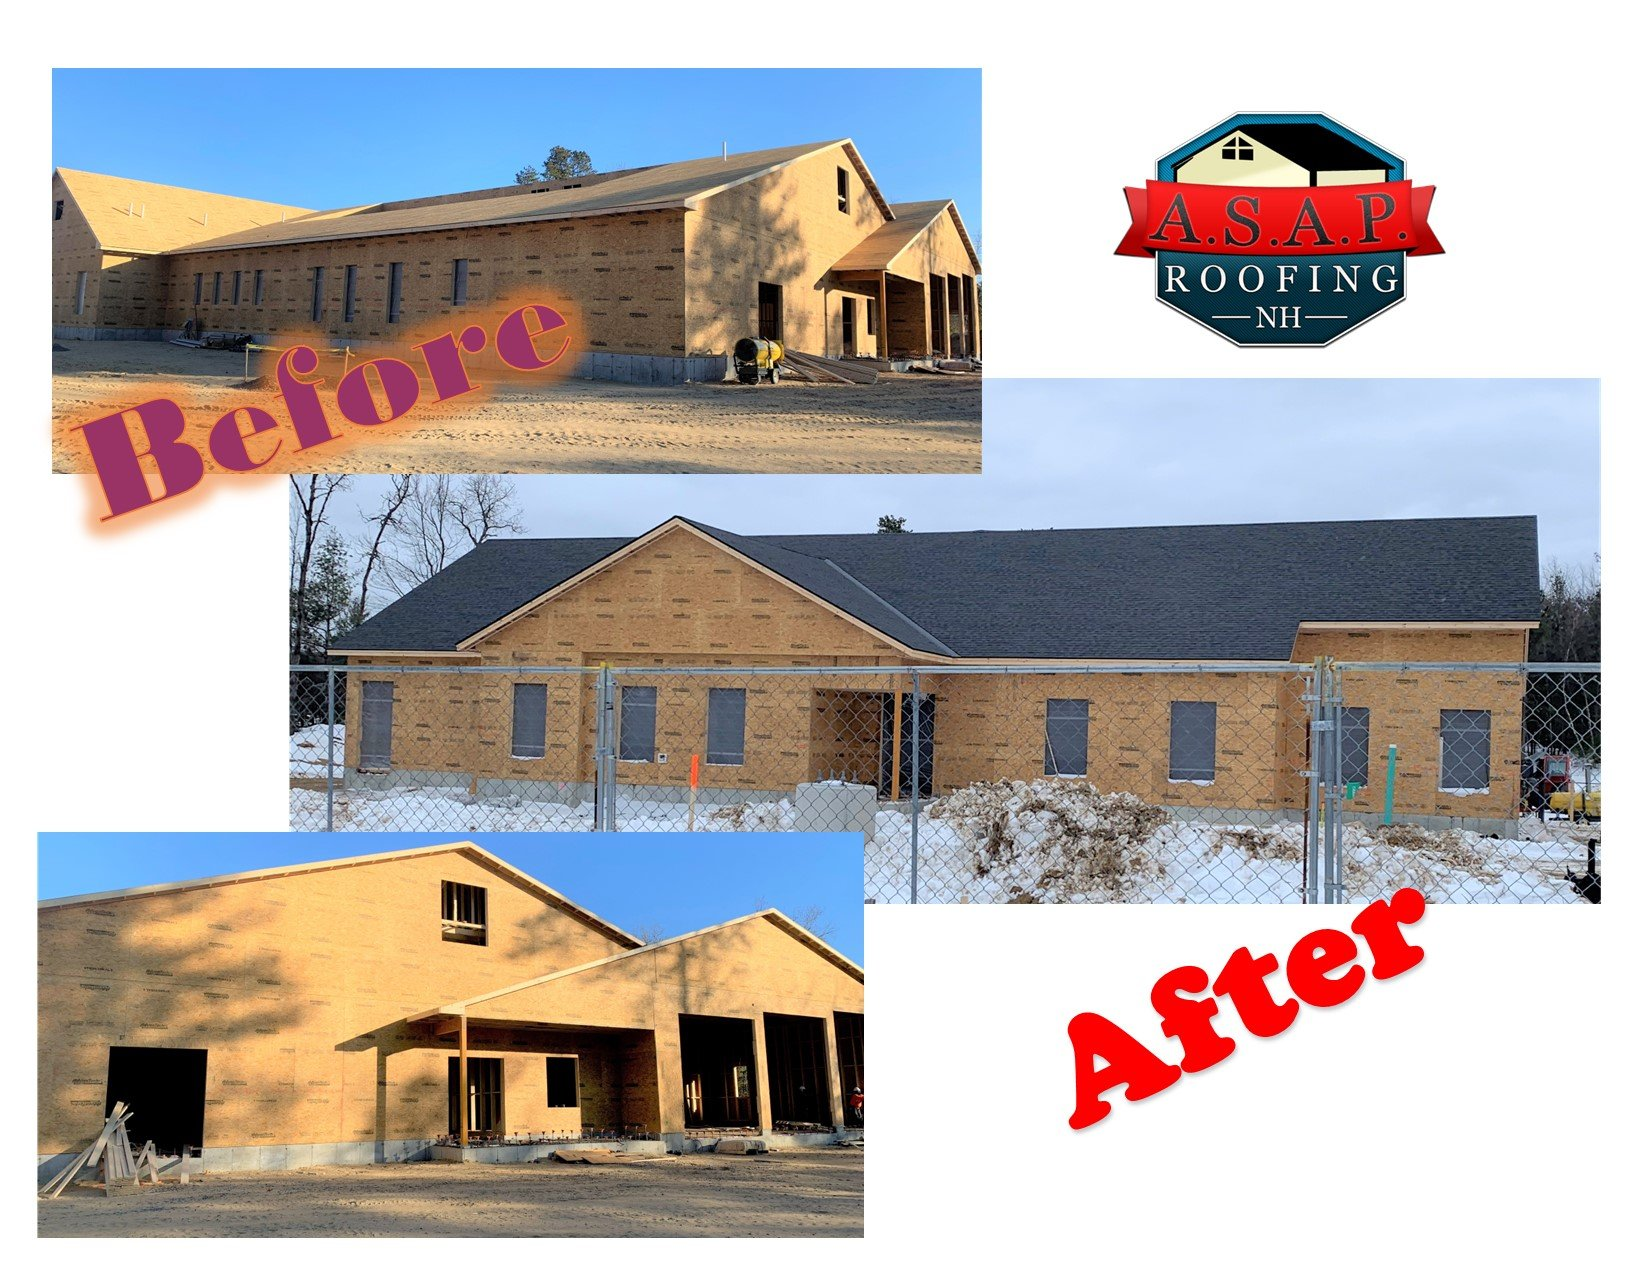 Commercial Roofing: Eastern Analytical in Concord, NH by ASAP Roofing